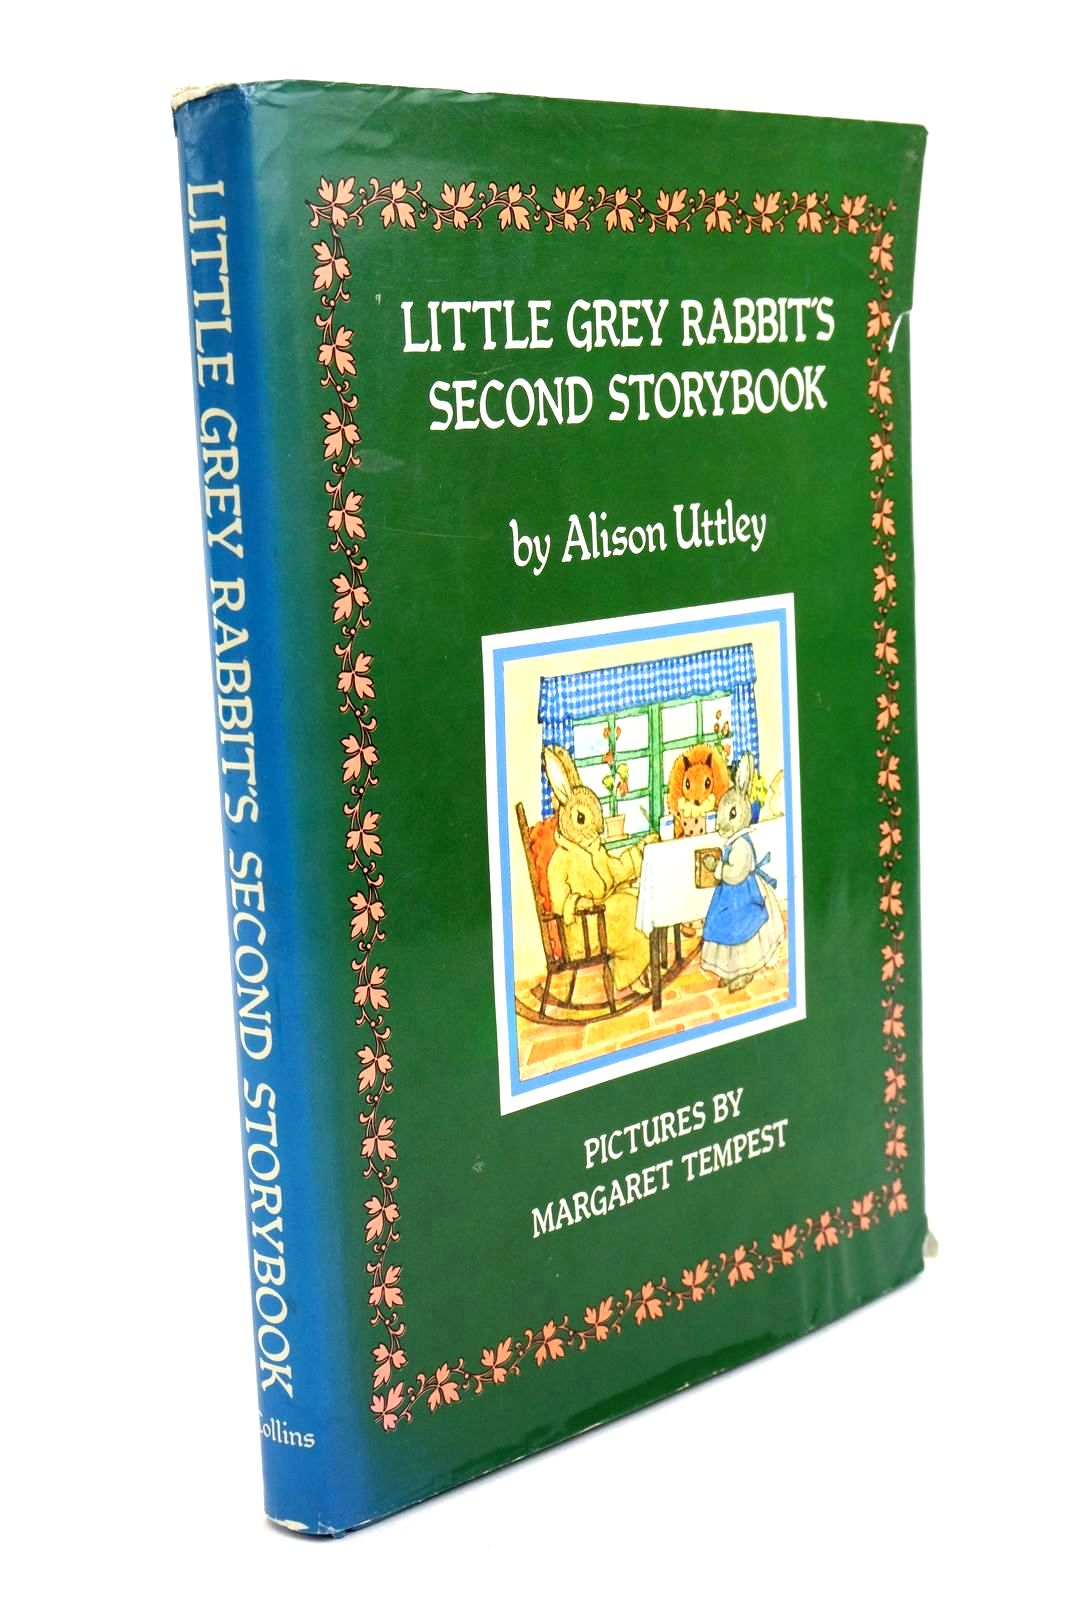 Photo of LITTLE GREY RABBIT'S SECOND STORYBOOK written by Uttley, Alison illustrated by Tempest, Margaret published by Collins (STOCK CODE: 1321675)  for sale by Stella & Rose's Books